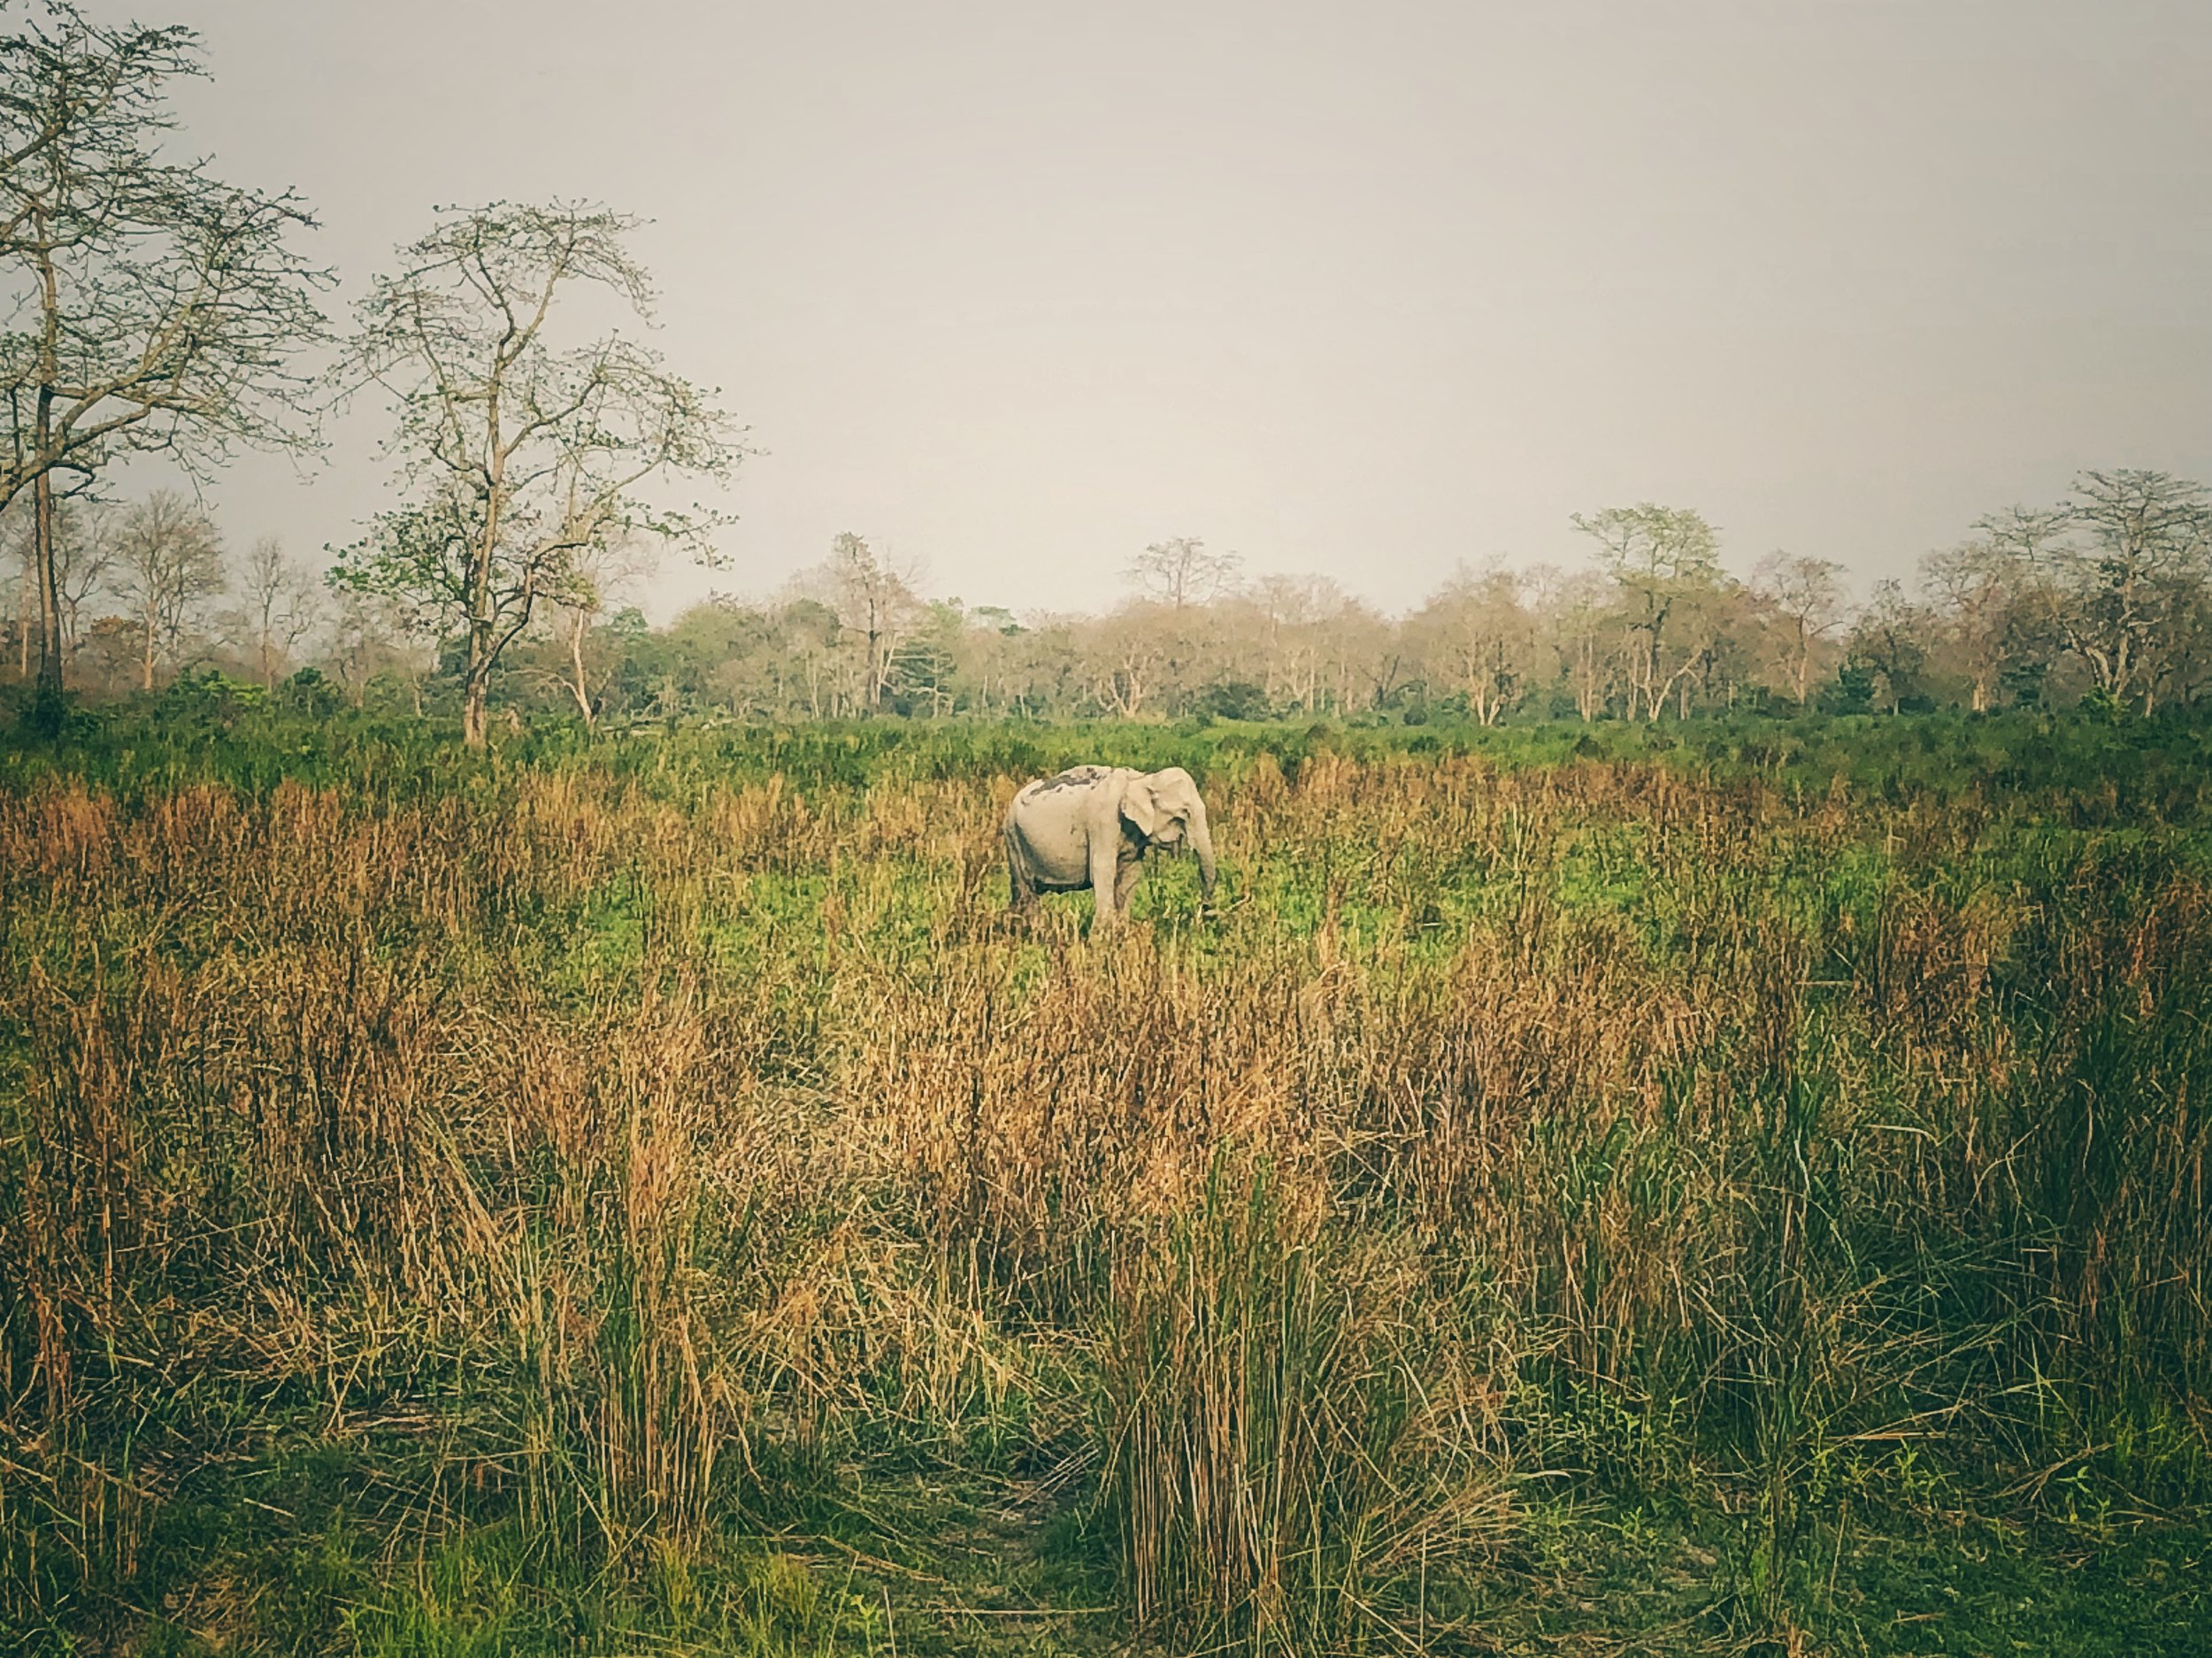 A lone Elephant - my first sighting